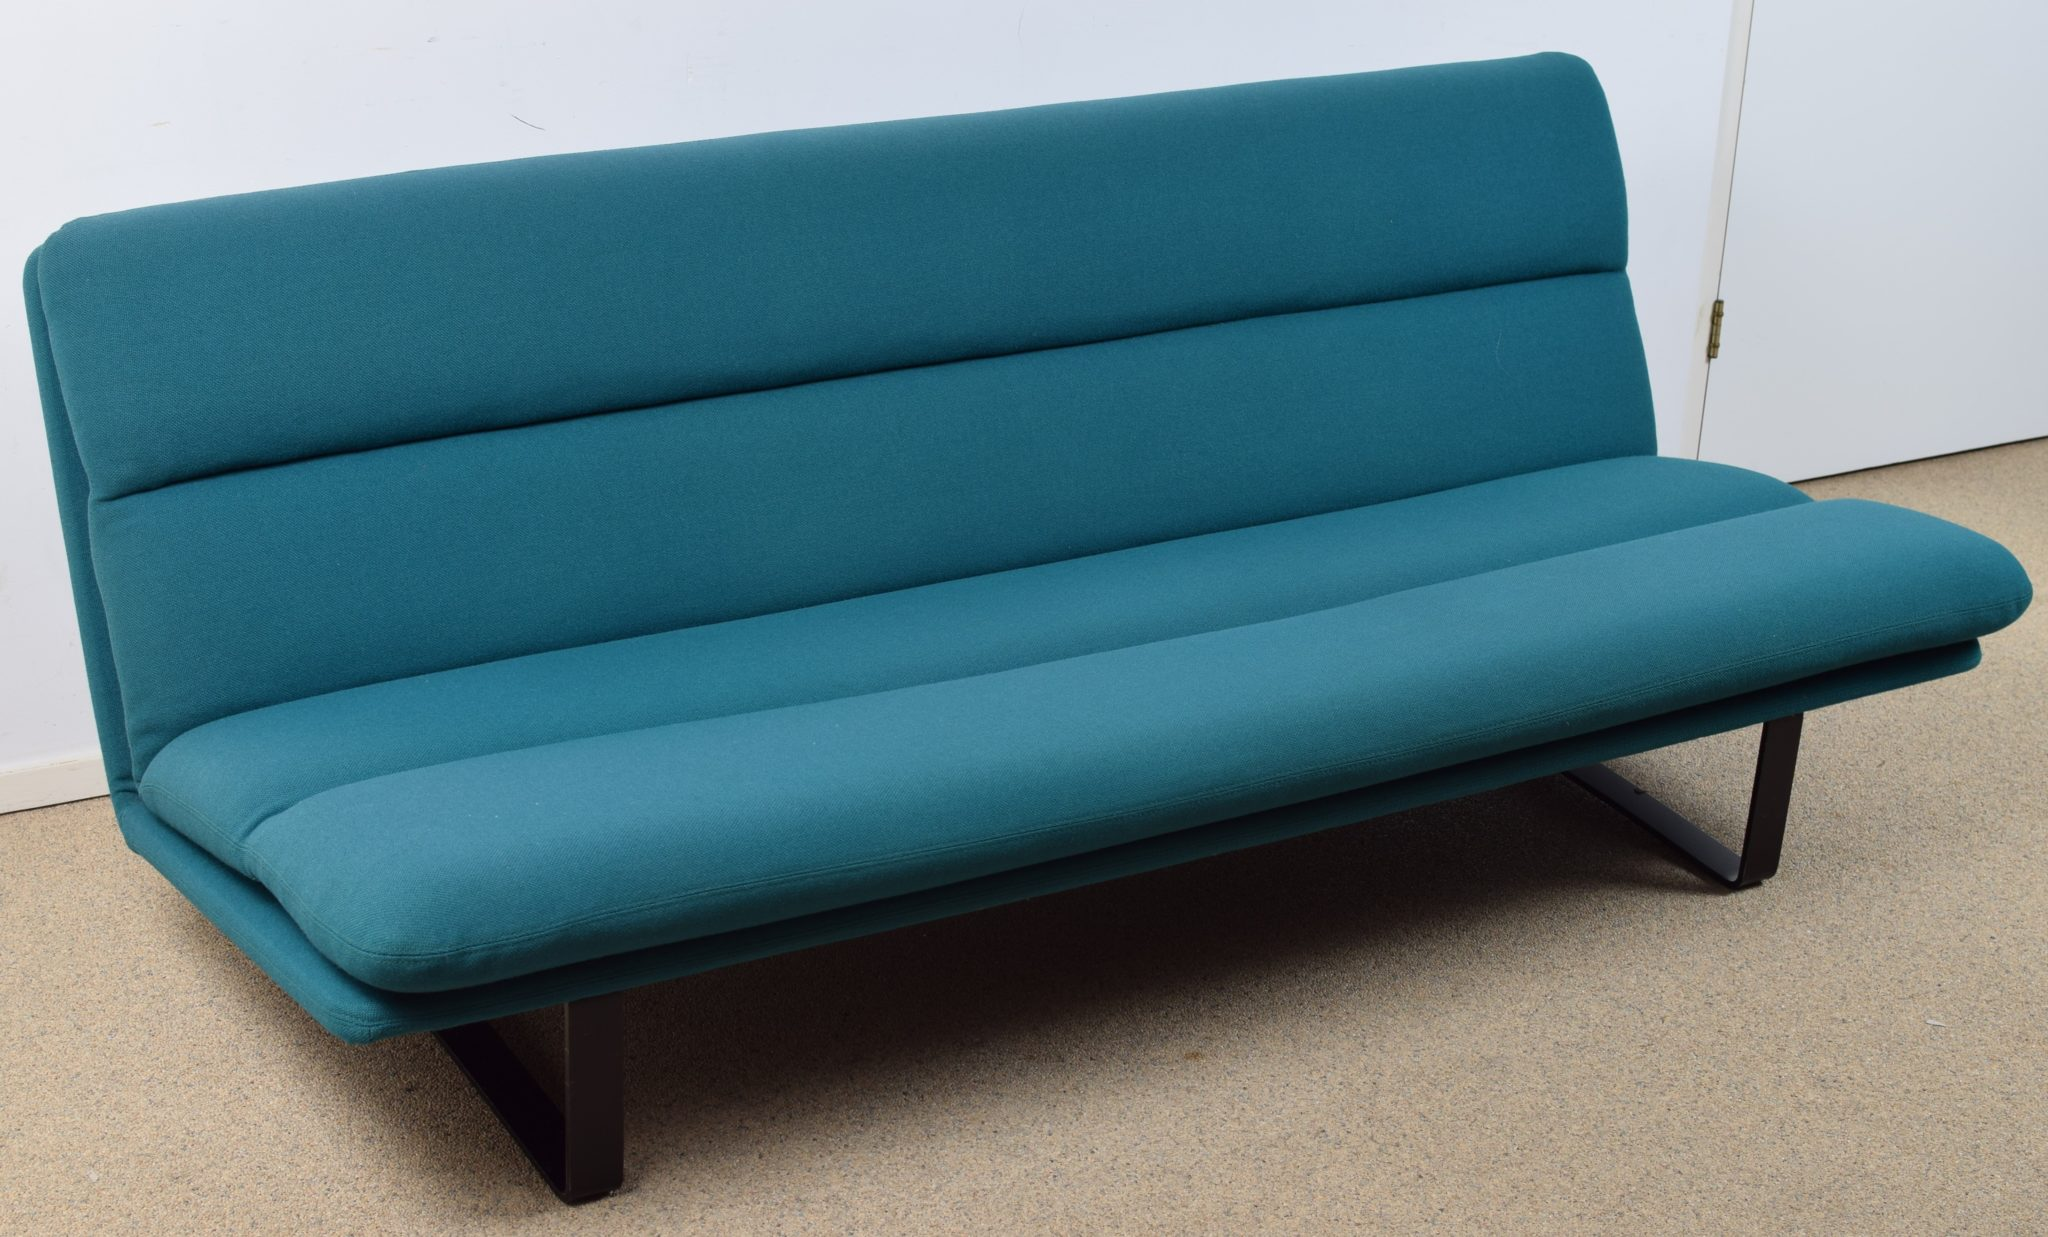 Model c683 3 seater sofa by kho liang ie howaboutout vintage